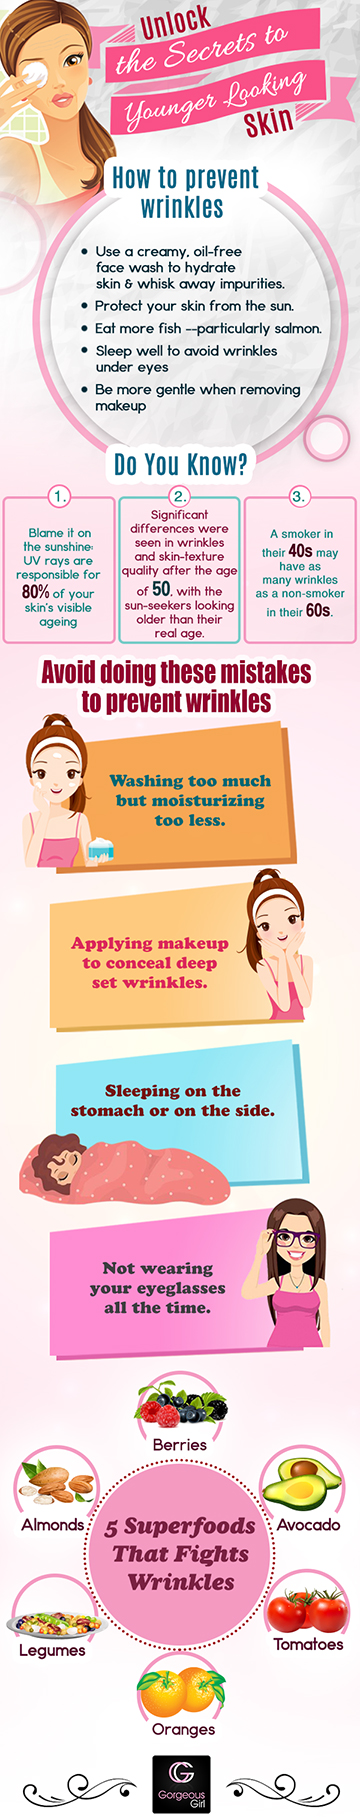 Stop Doing These Things To Prevent Wrinkles